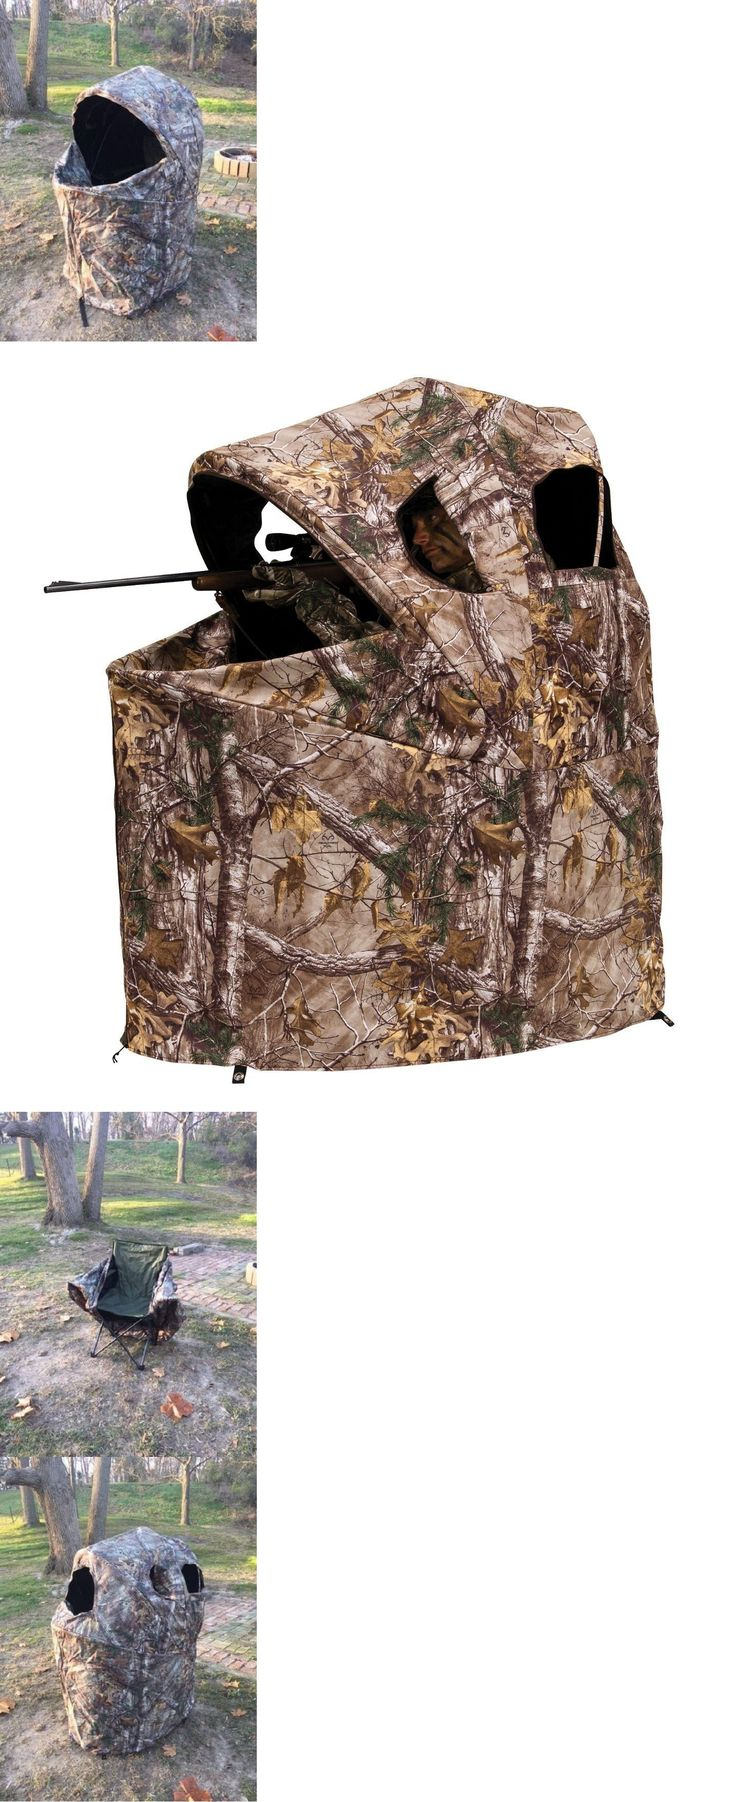 Blinds 177910: Portable Hunting Blind Turkey Duck Deer Waterfowl Folding Ground Camo Bow Hunt -> BUY IT NOW ONLY: $119.47 on eBay!